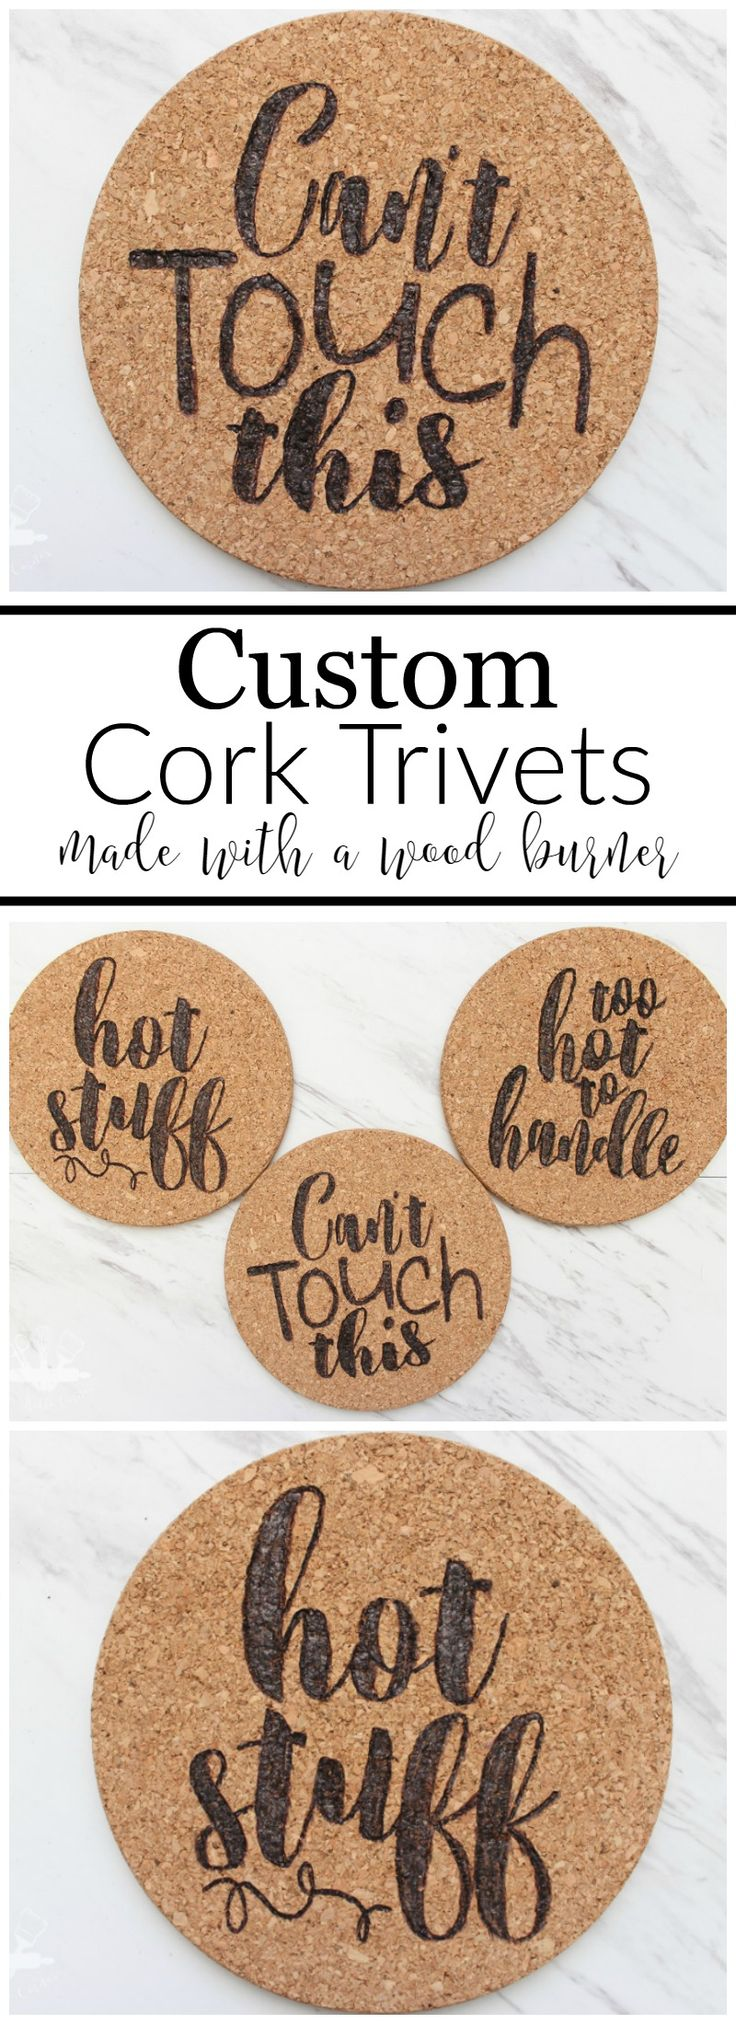 You can easily make these custom cork trivets using a stencil and a wood burning tool. Perfect for a homemade housewarming gift!